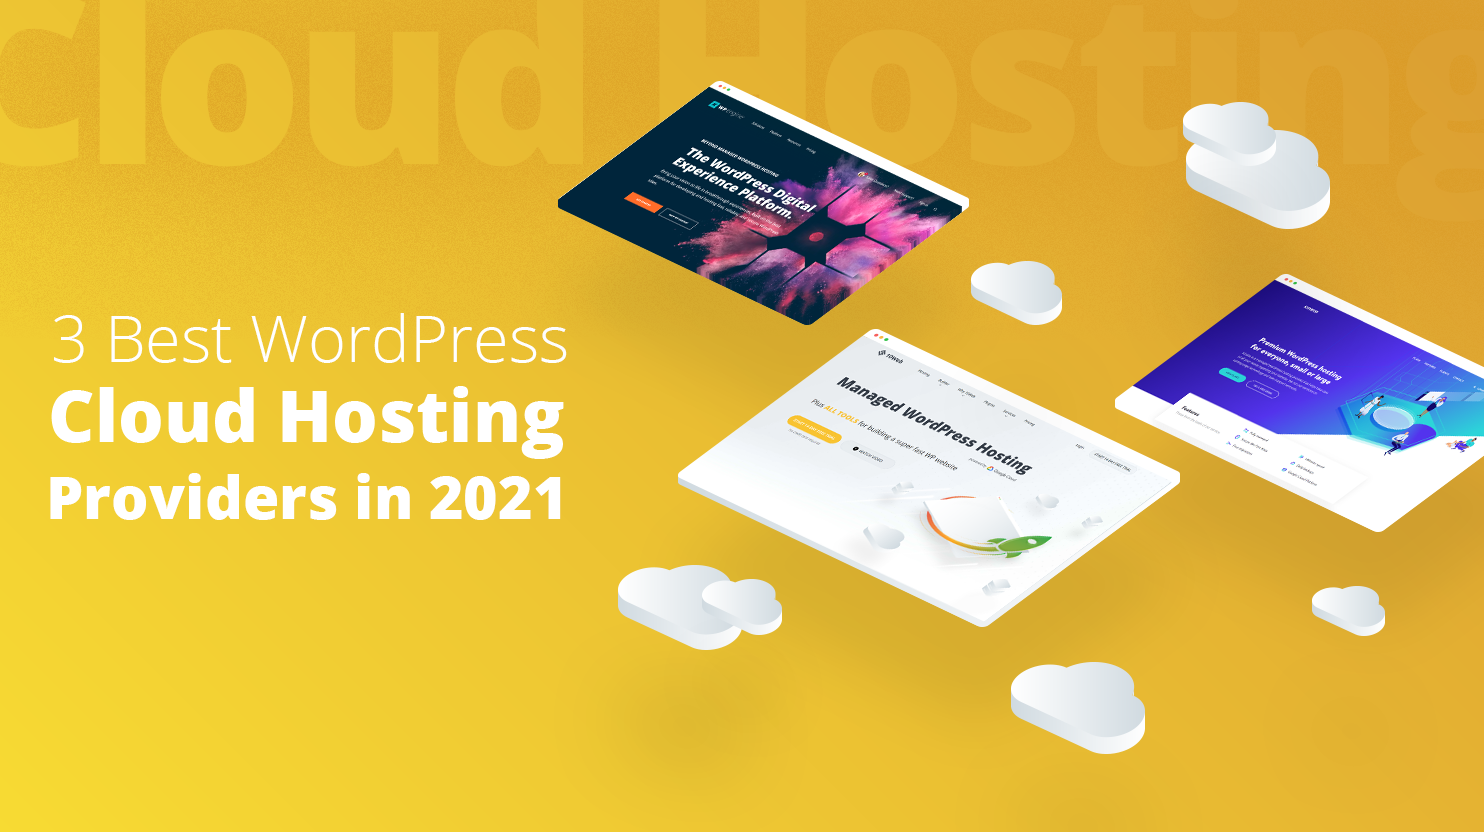 Homepages of 10Web, Kinsta and WP Engine surrounded by clouds